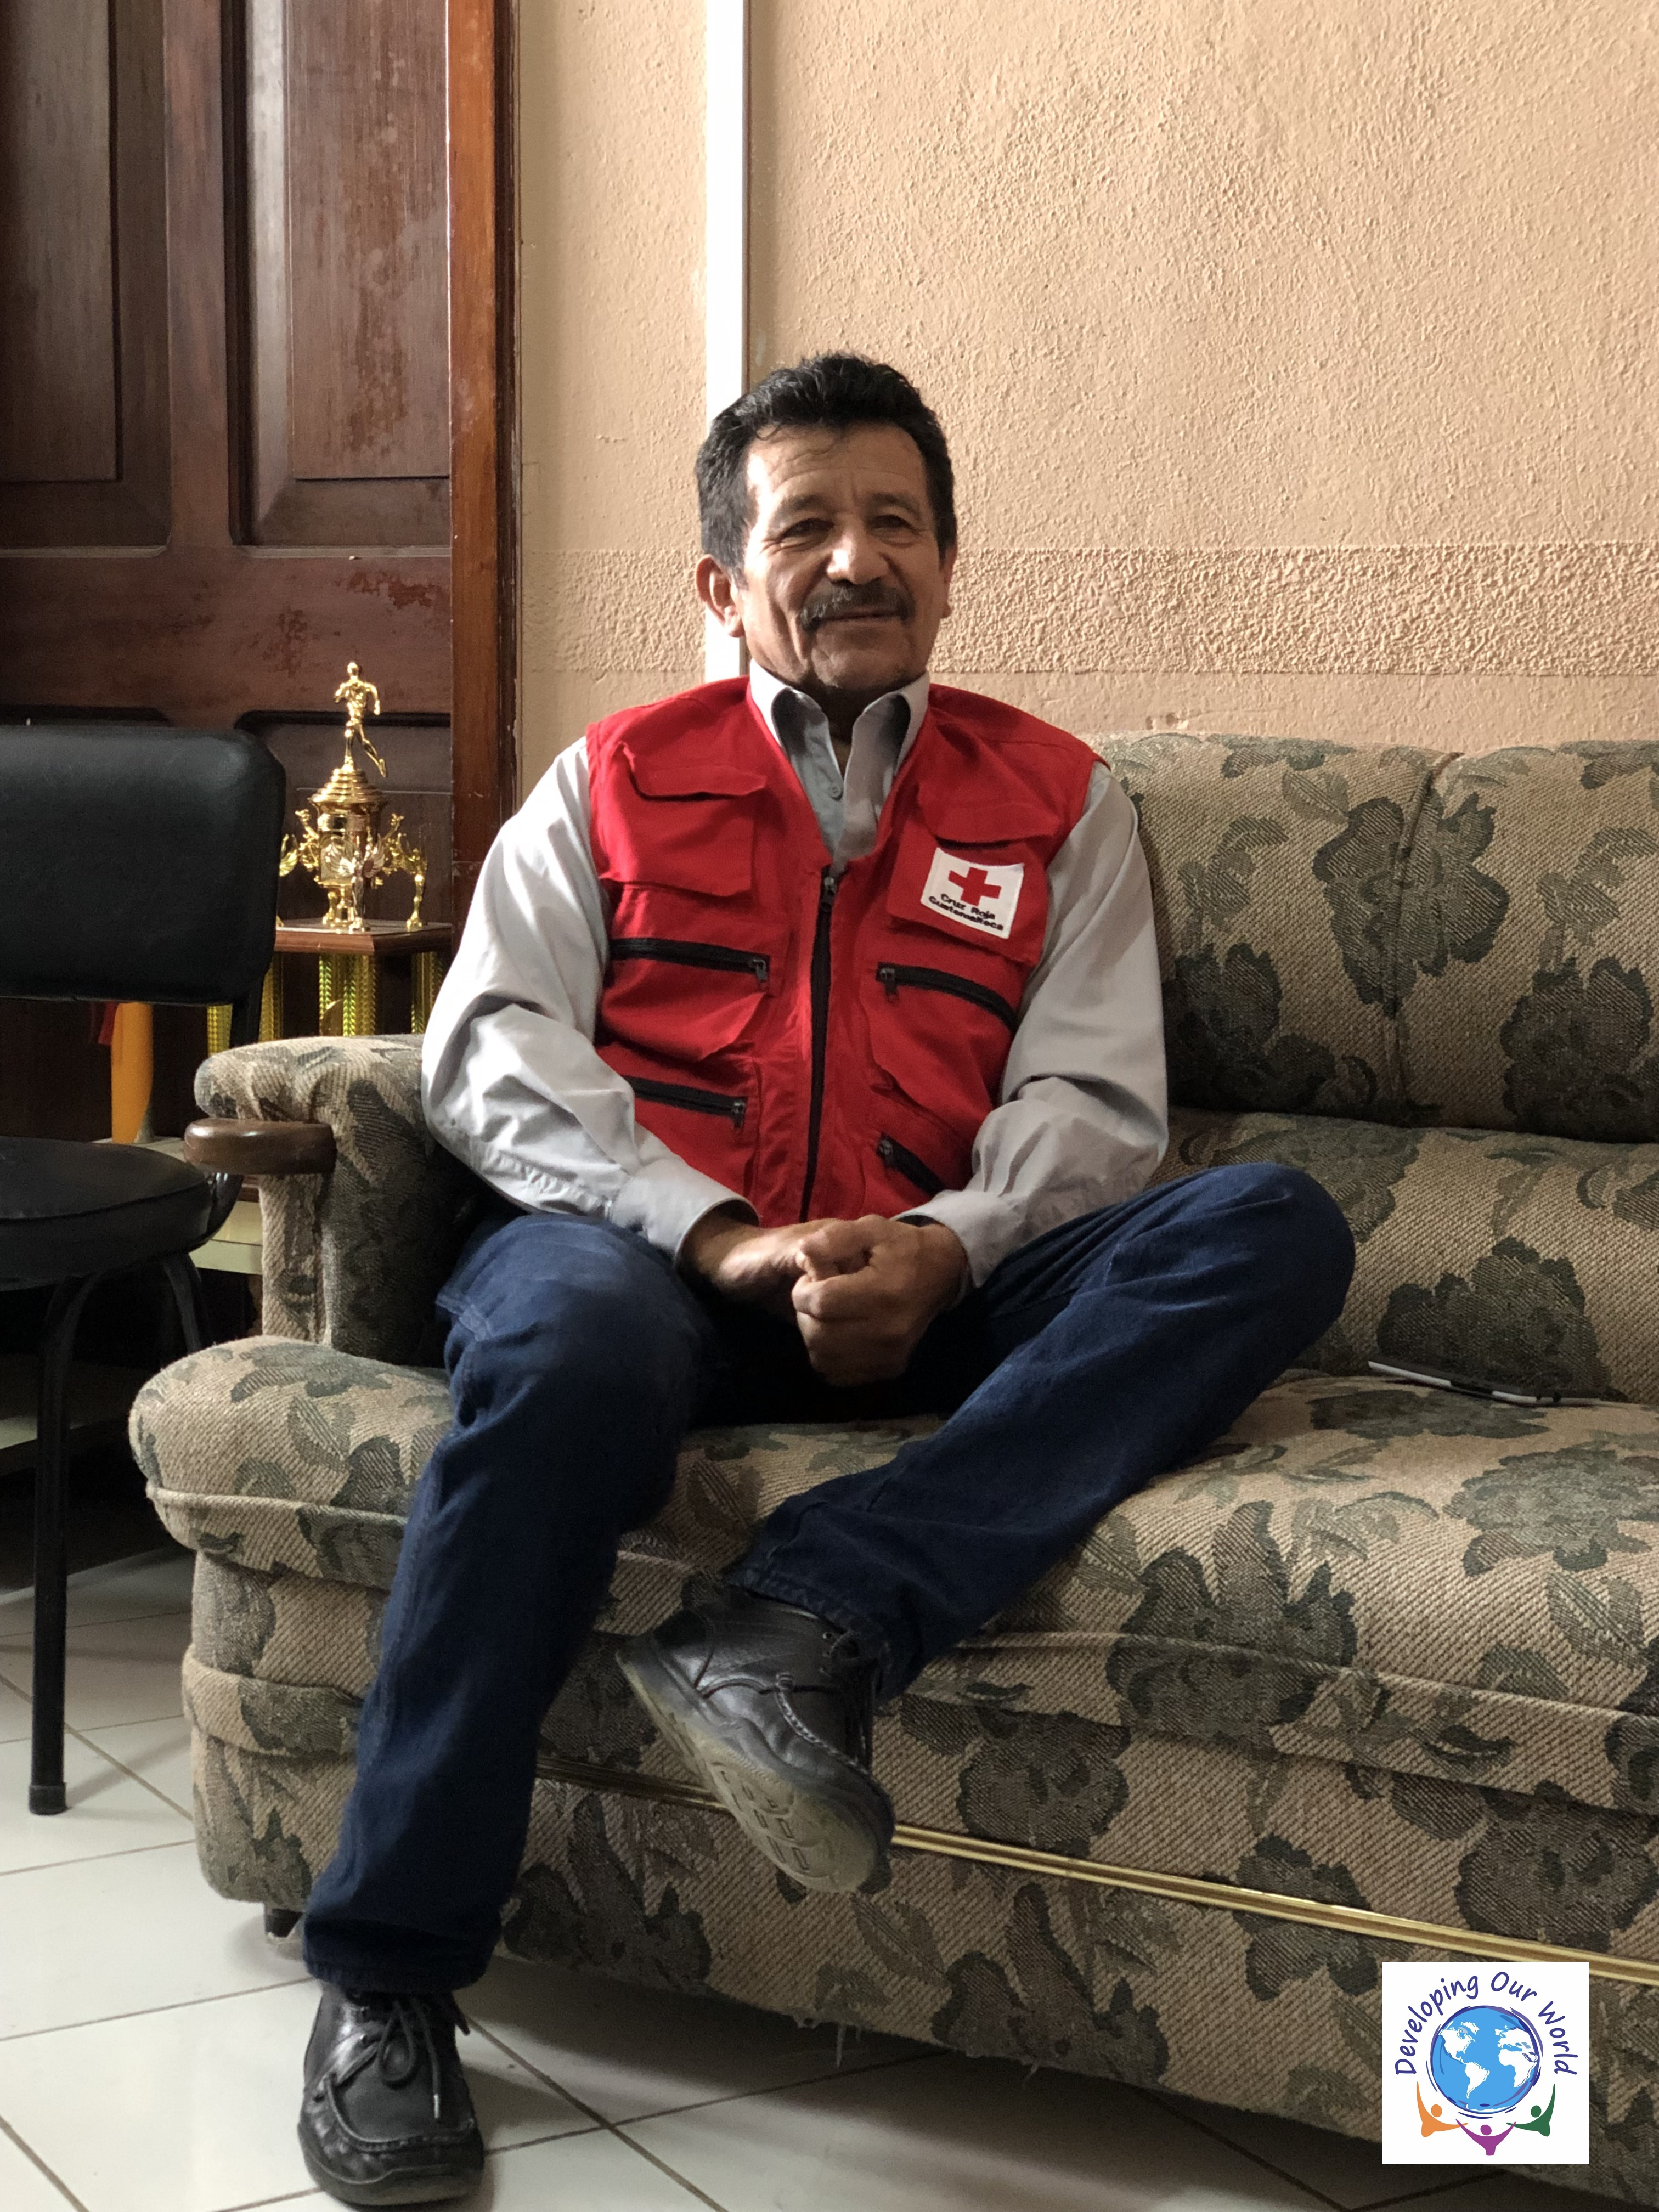 Dennis Wellmann, the Red Cross 's Director and one of the founders of Choval EW